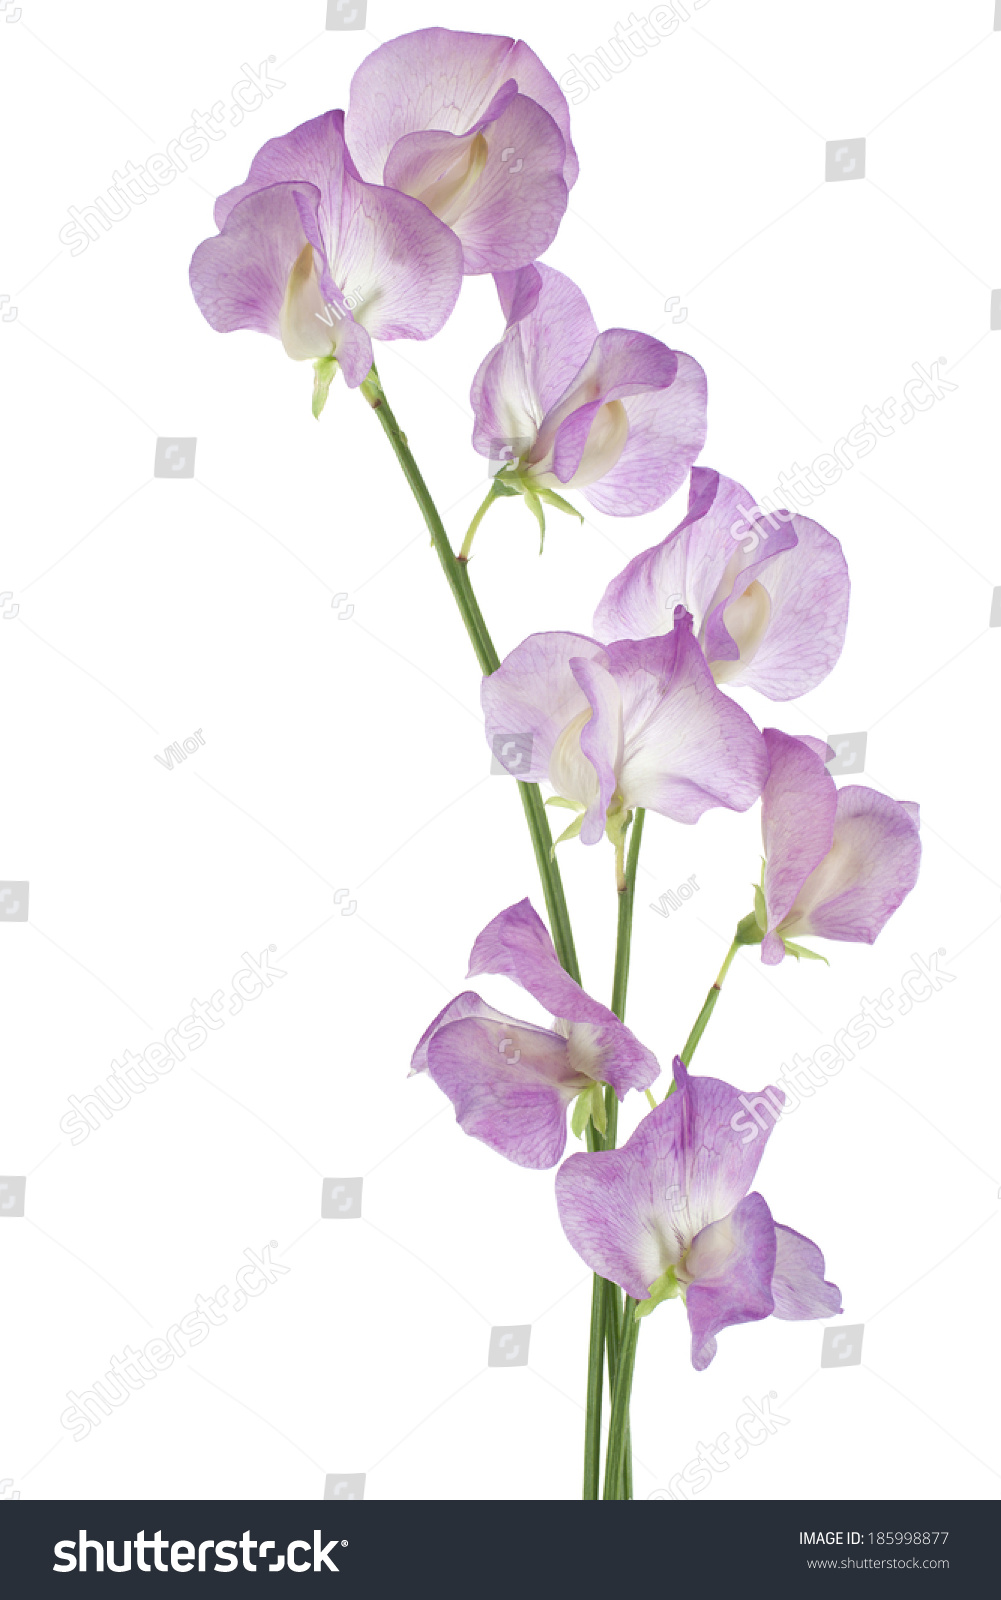 Studio Shot Of Magenta Colored Sweet Pea Flowers Isolated On White